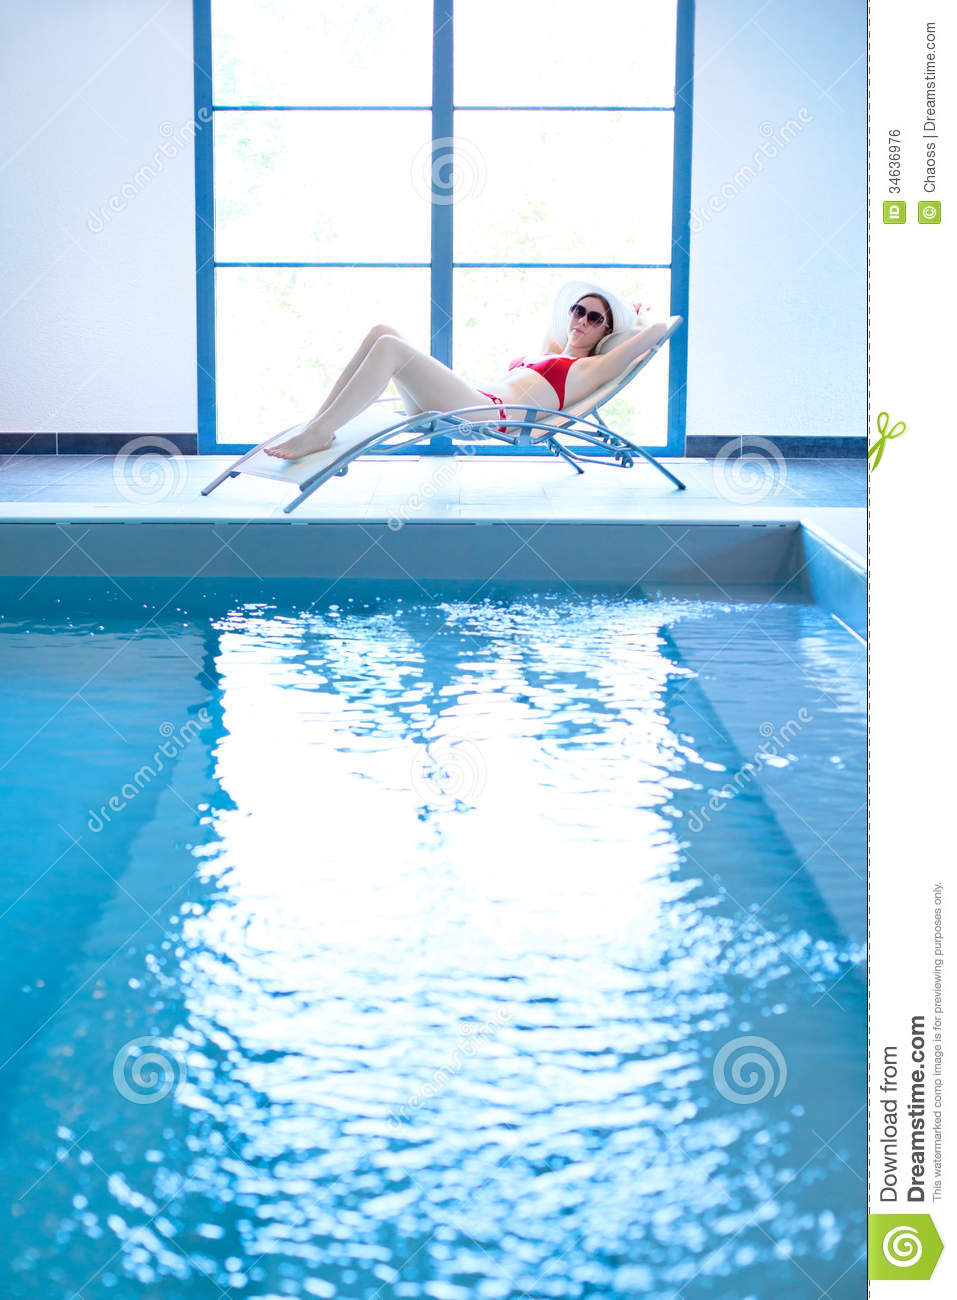 Swimming pool royalty free stock image image 34636976 for Gay in singapore swimming pools